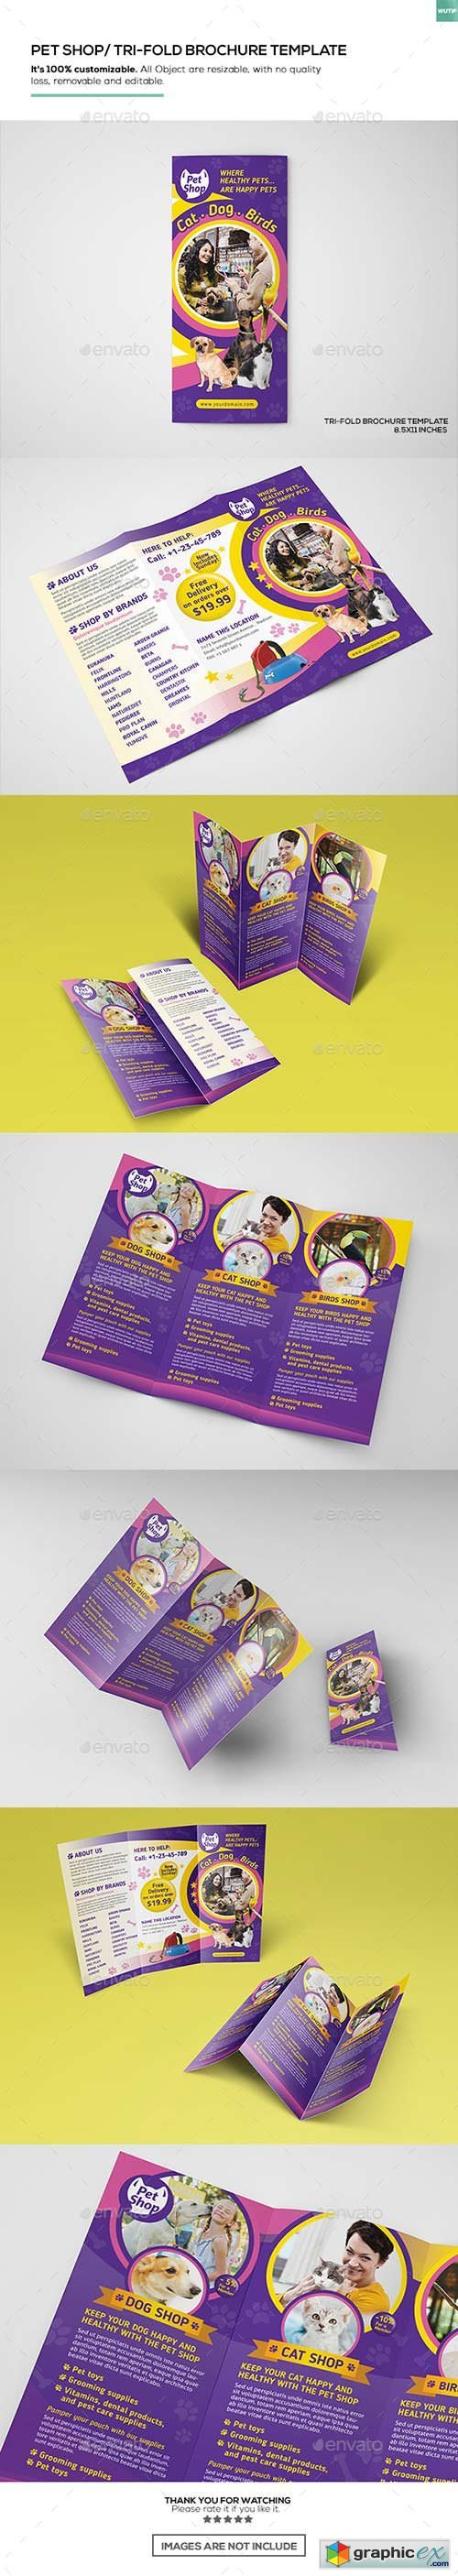 Pet Store/ Trifold Brochure Template